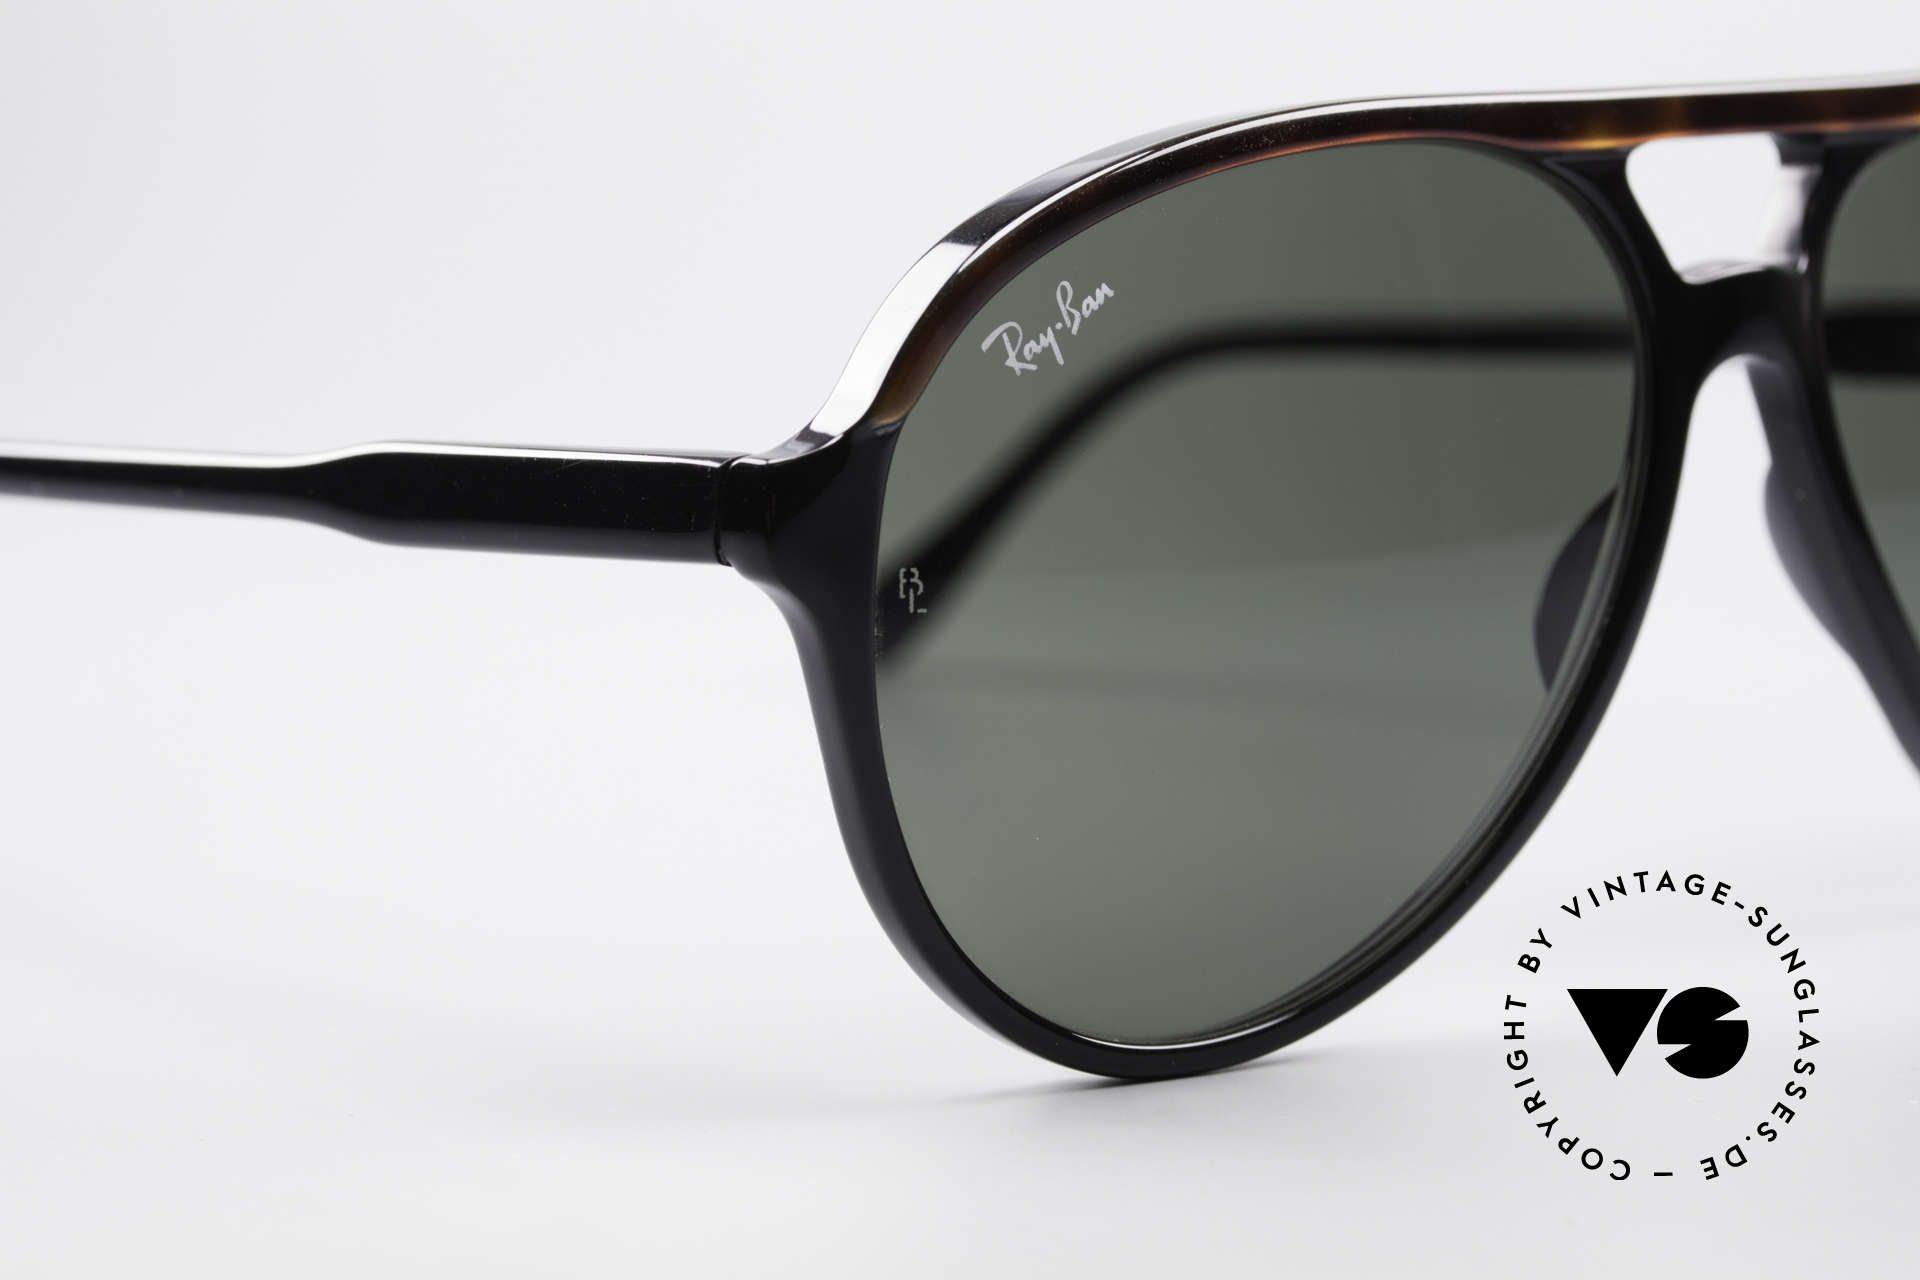 Ray Ban Traditionals Style A Old Aviator Sunglasses USA, orig. name: Traditionals Style A, L1668, G15, 59/15, Made for Men